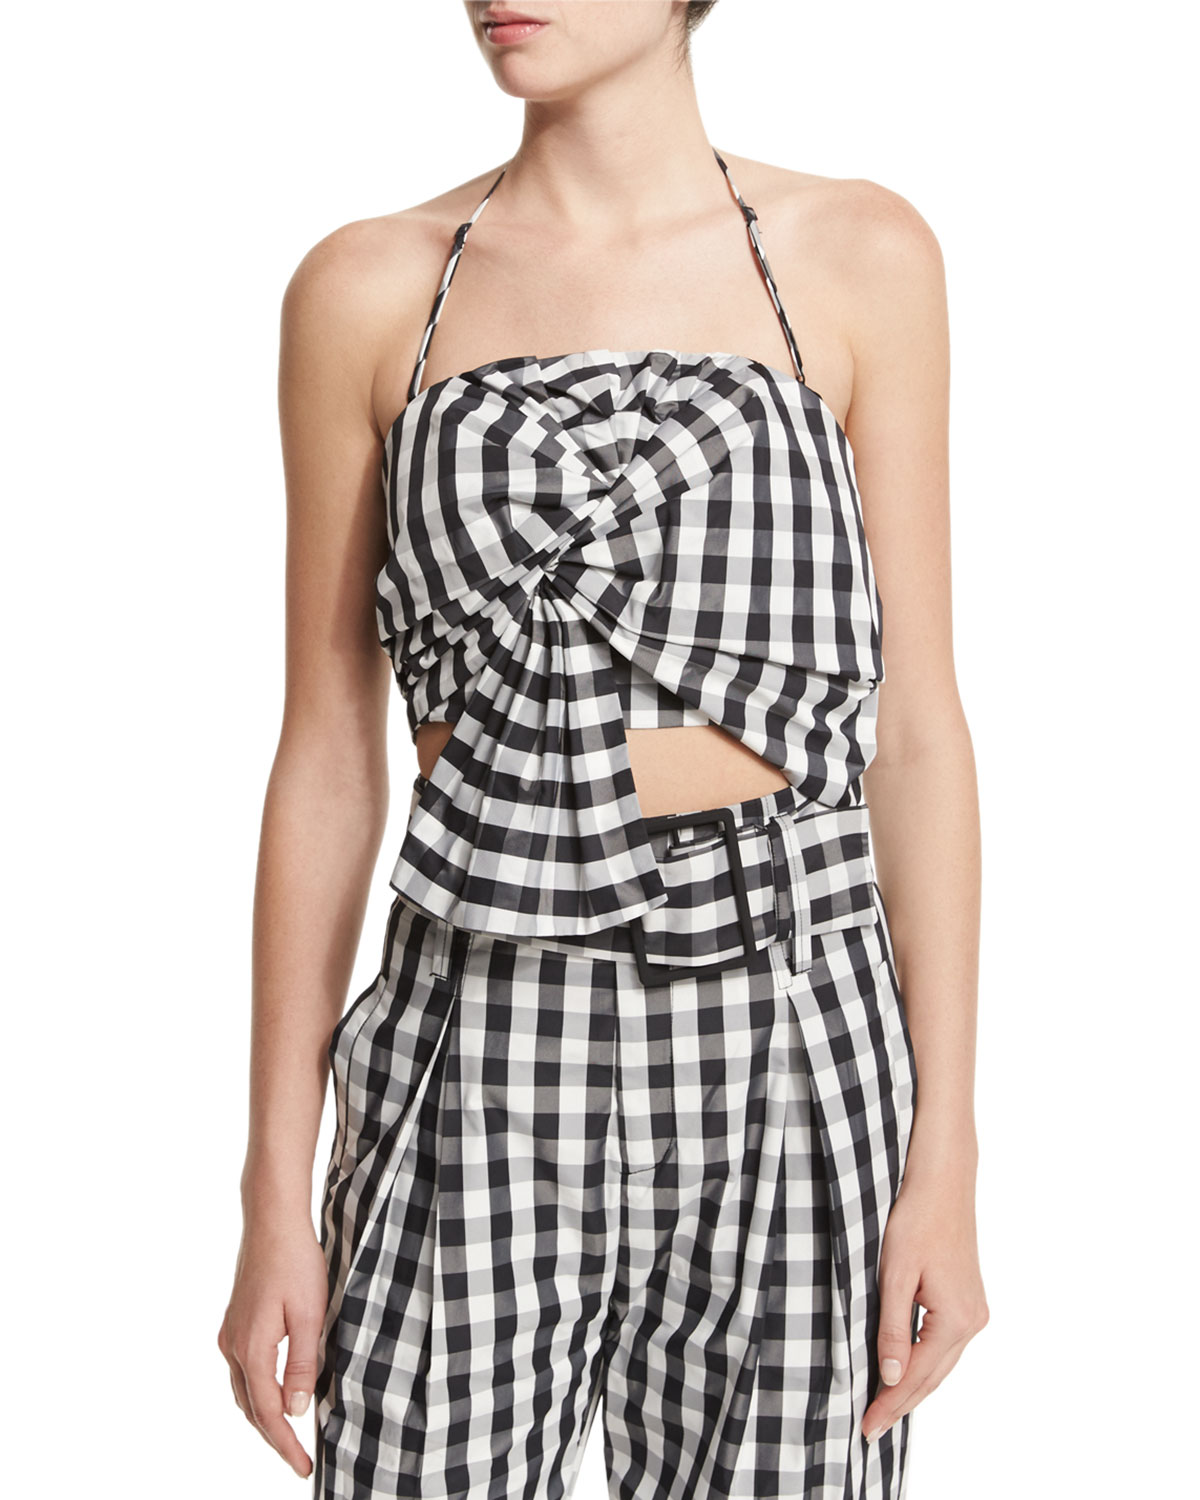 Knot-Front Halter Top, Gingham, Size: LARGE - Kendall + Kylie